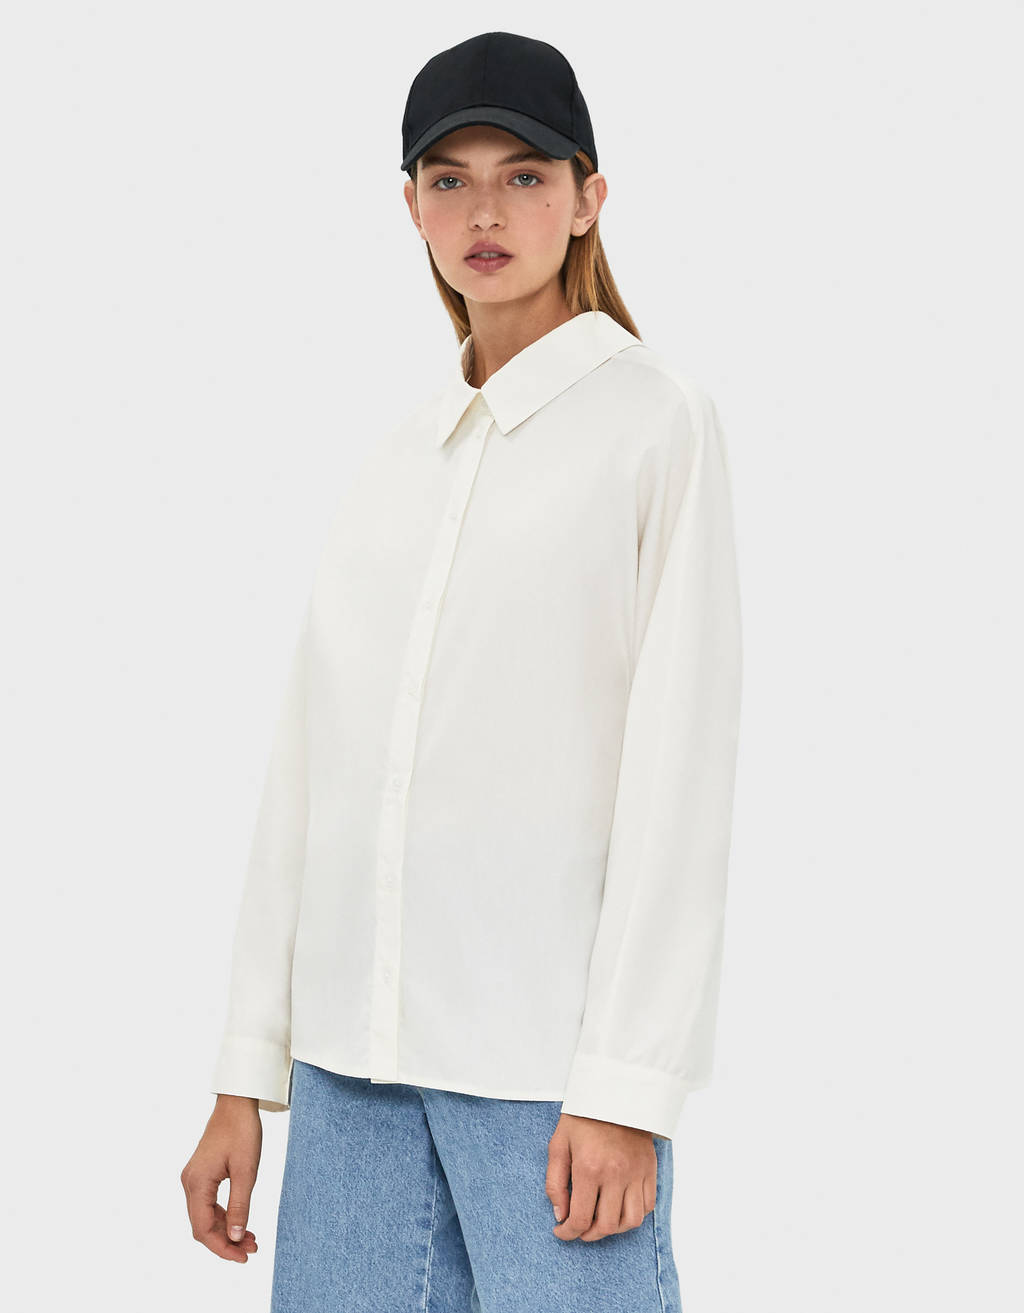 Oversized shirt with bow